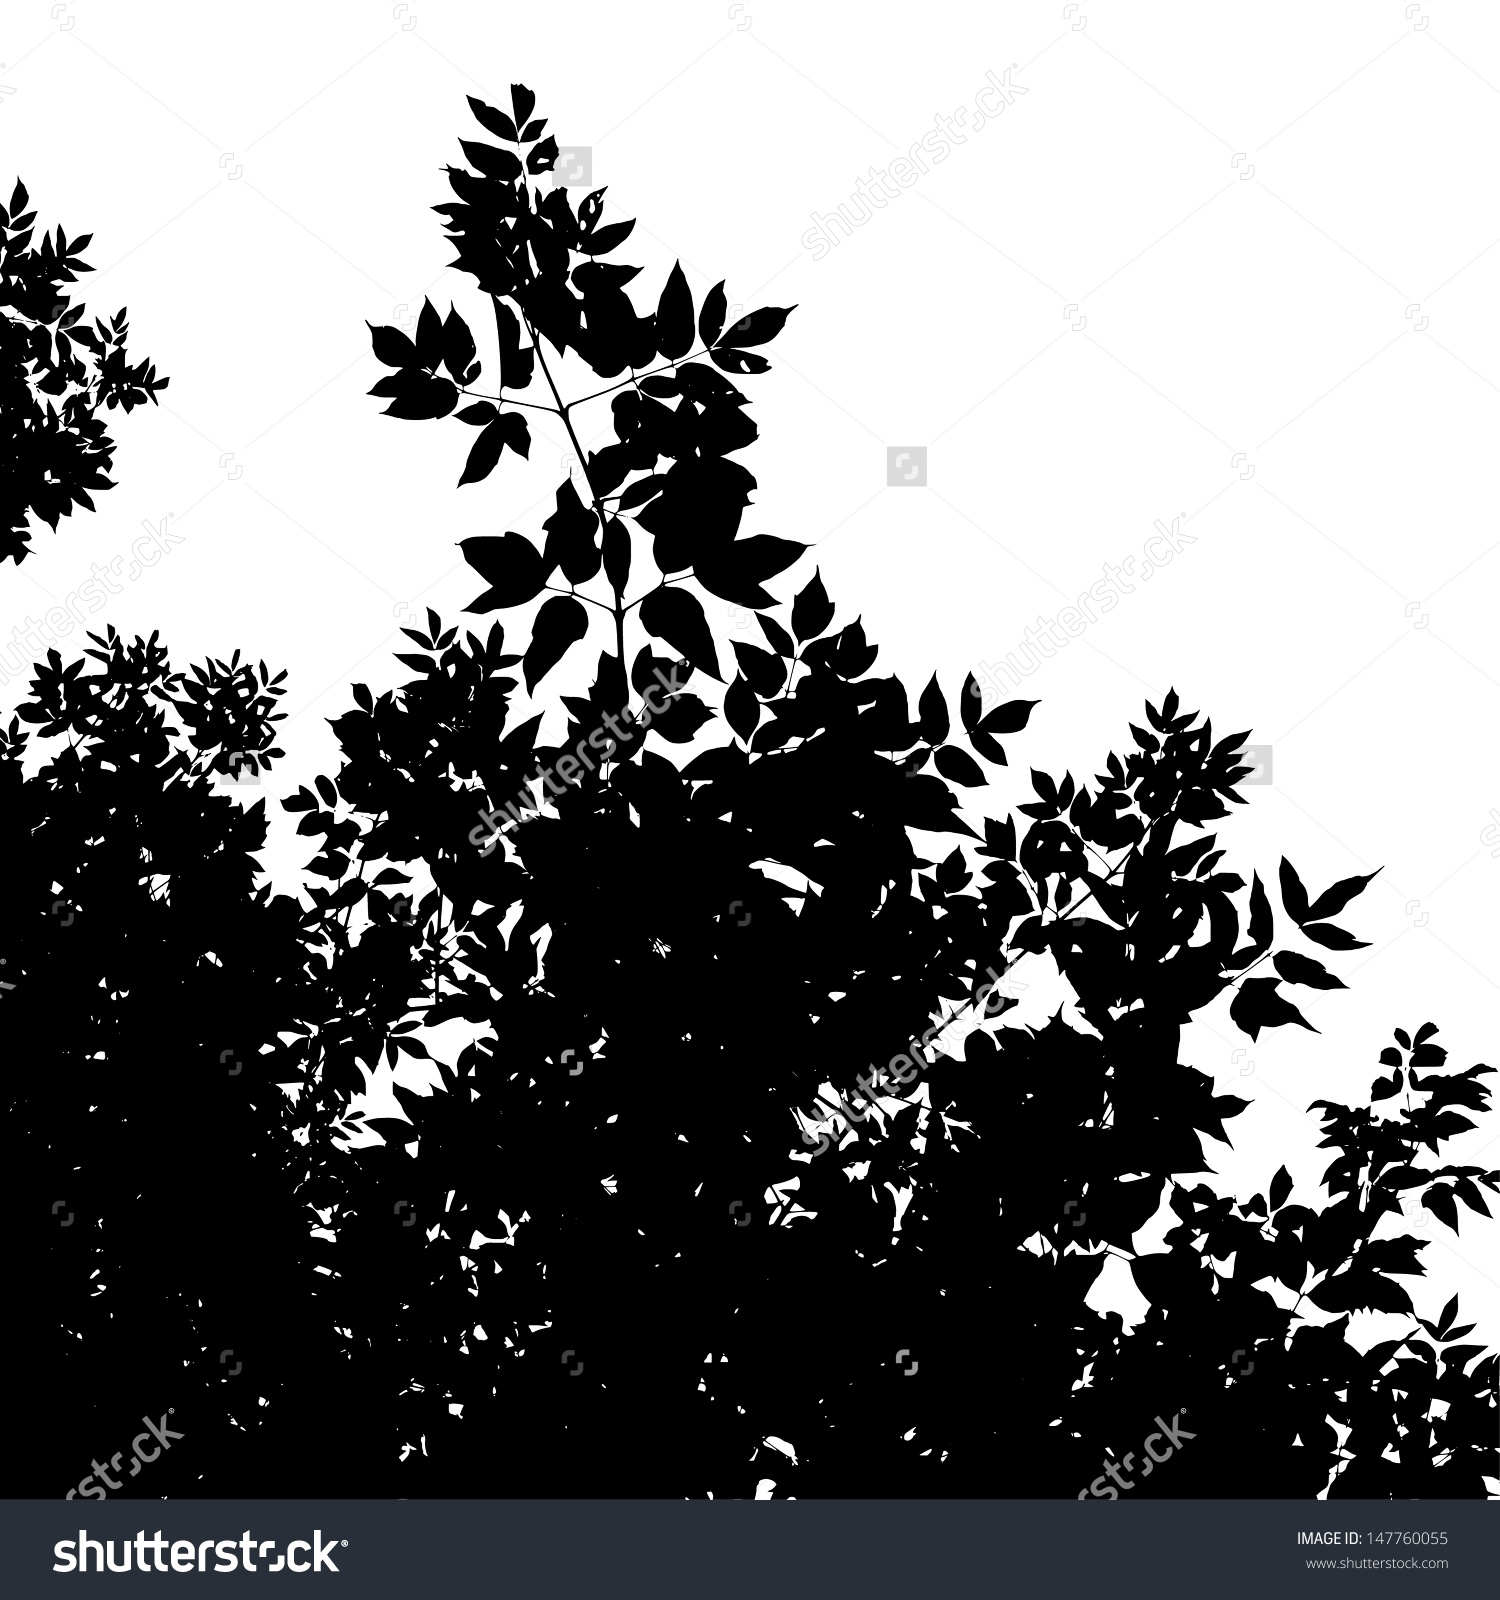 Abstract Background Leaves Silhouette American Maple Stock Vector.